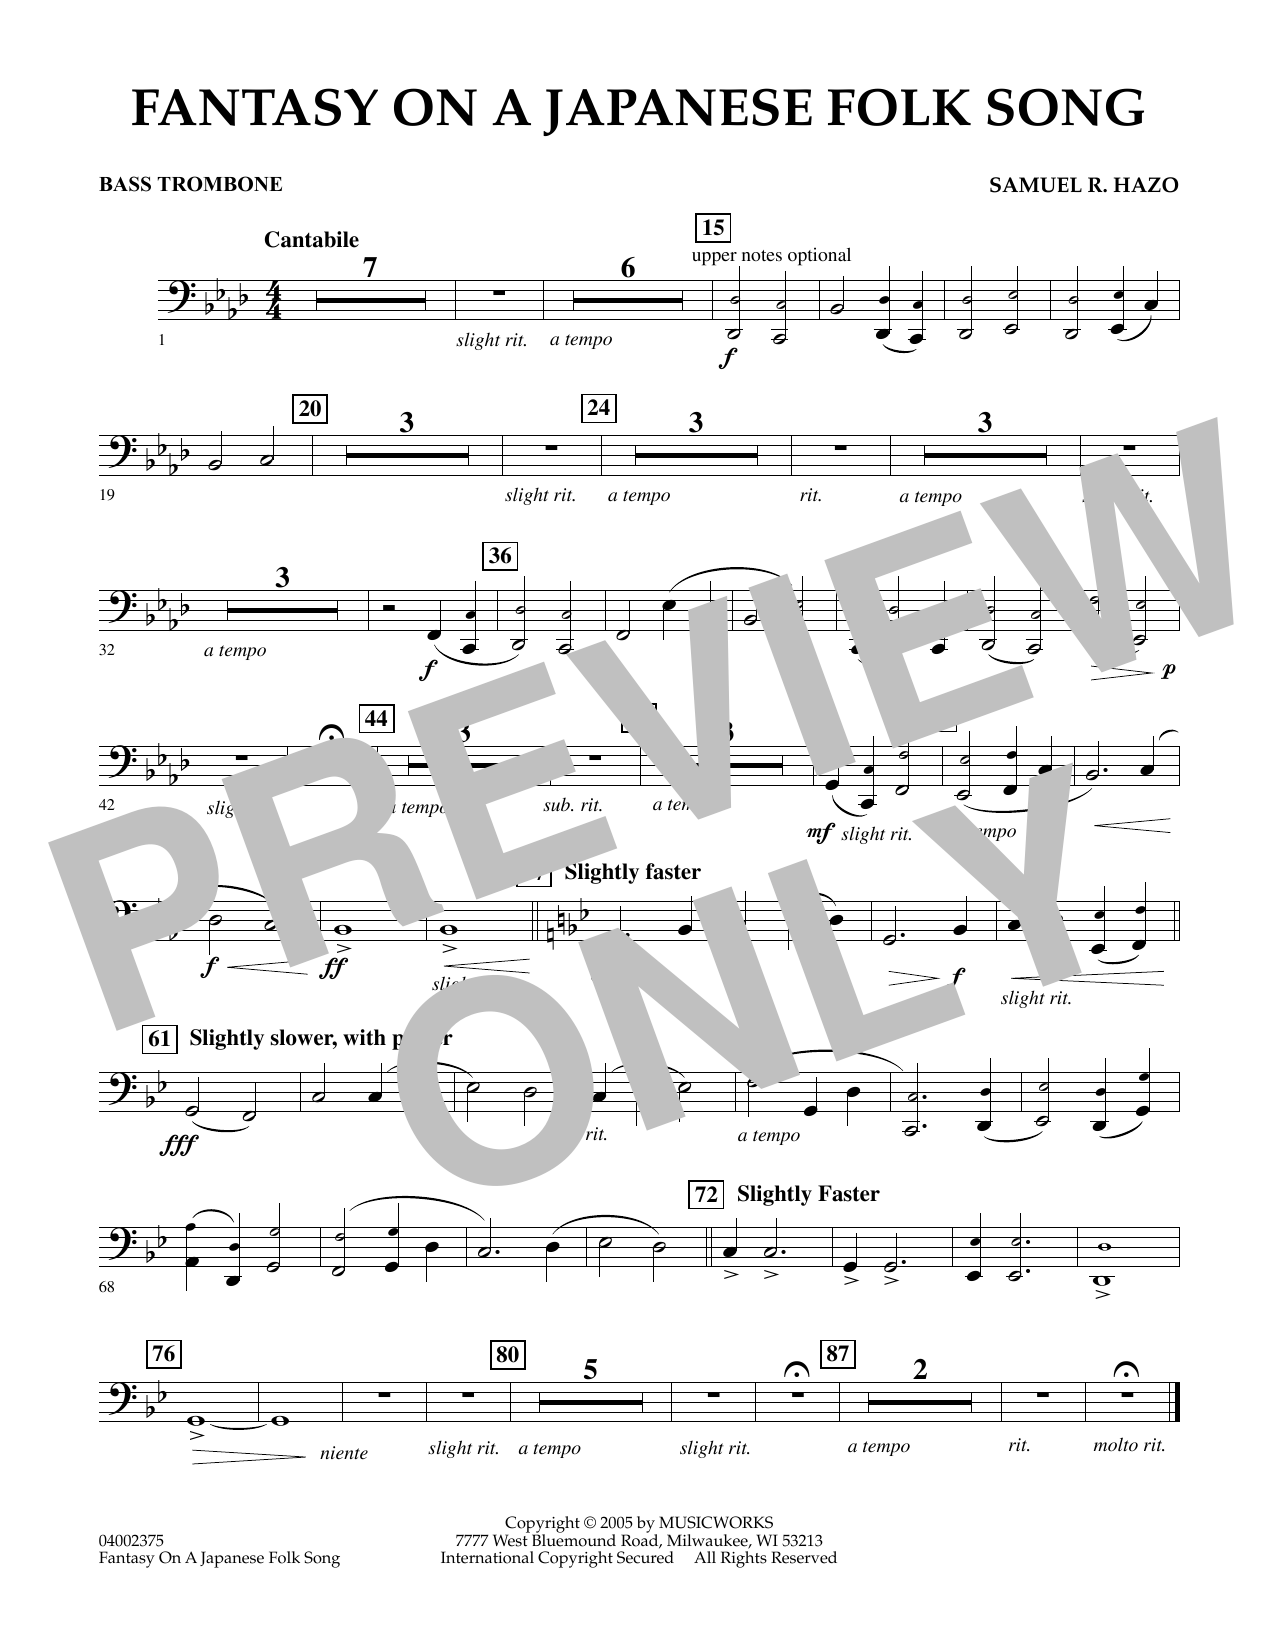 Download Samuel R. Hazo 'Fantasy On A Japanese Folk Song - Bass Trombone' Digital Sheet Music Notes & Chords and start playing in minutes